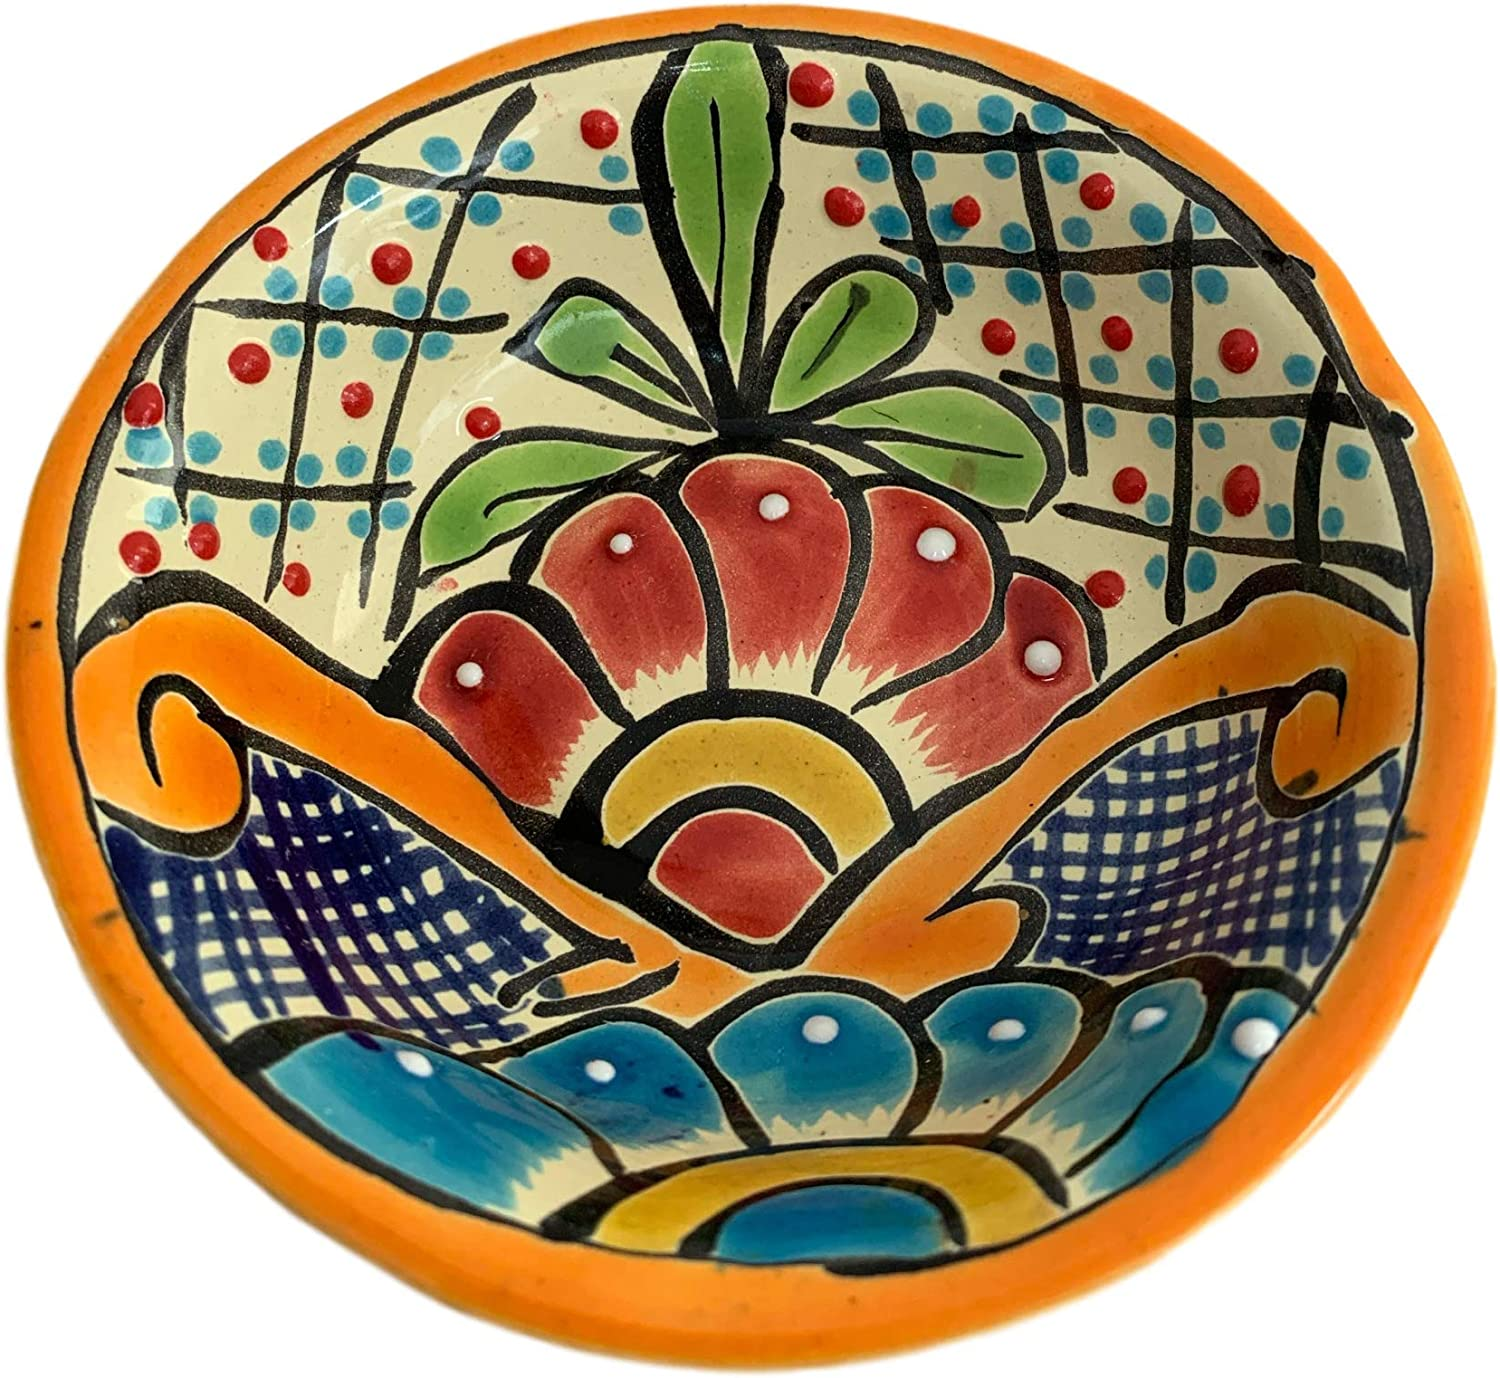 Colorful Decorative Mexican Style Fiesta Bowl - Hand-Made and Hand Painted In Mexico - 5 Inches - 12 cm Tazon Color